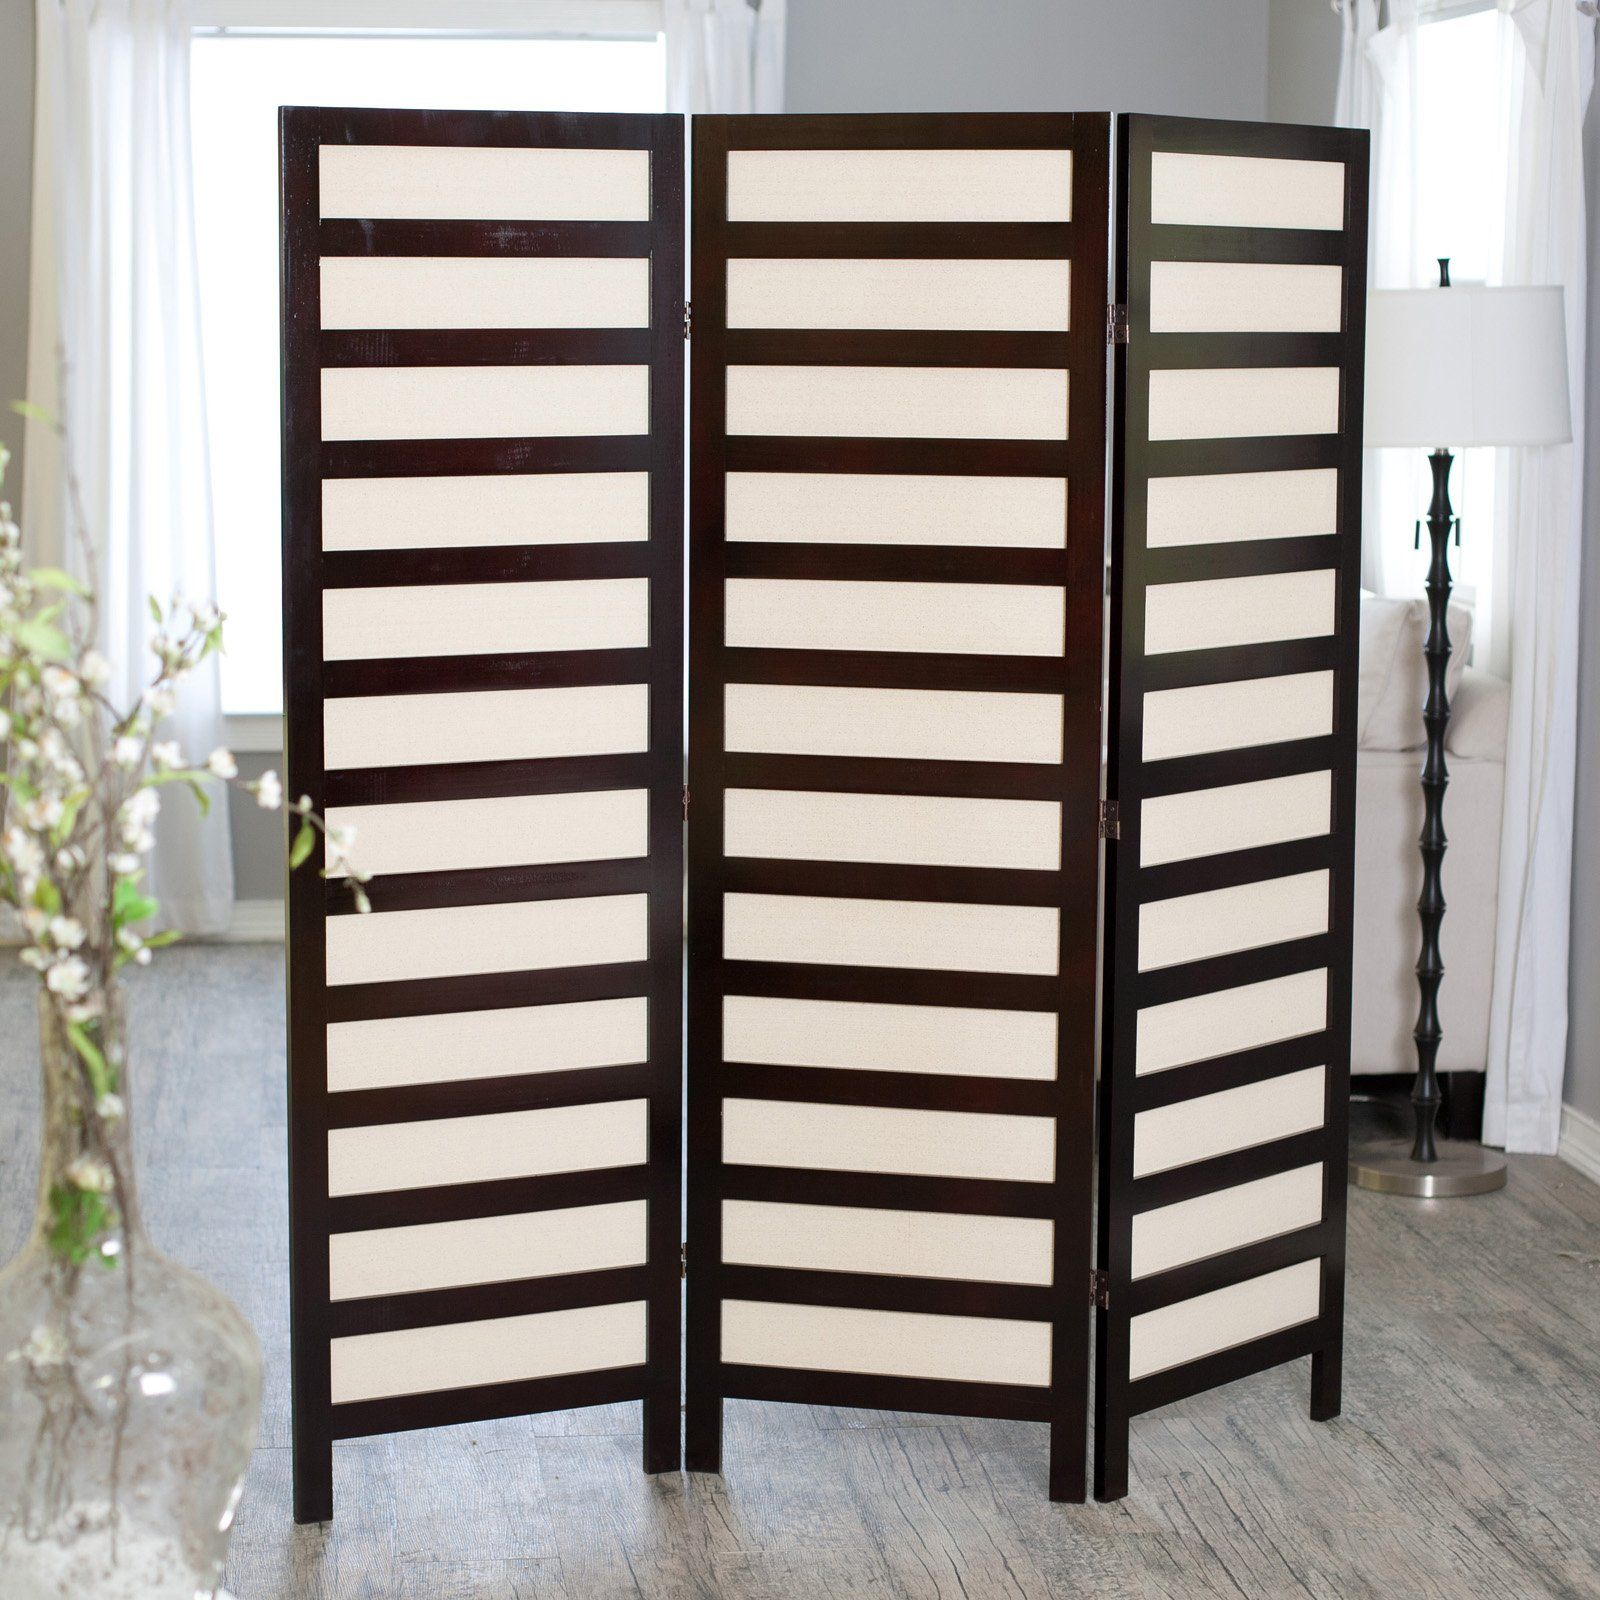 100 Room Divider Ideas Room Divider Divider Room Divider Screen